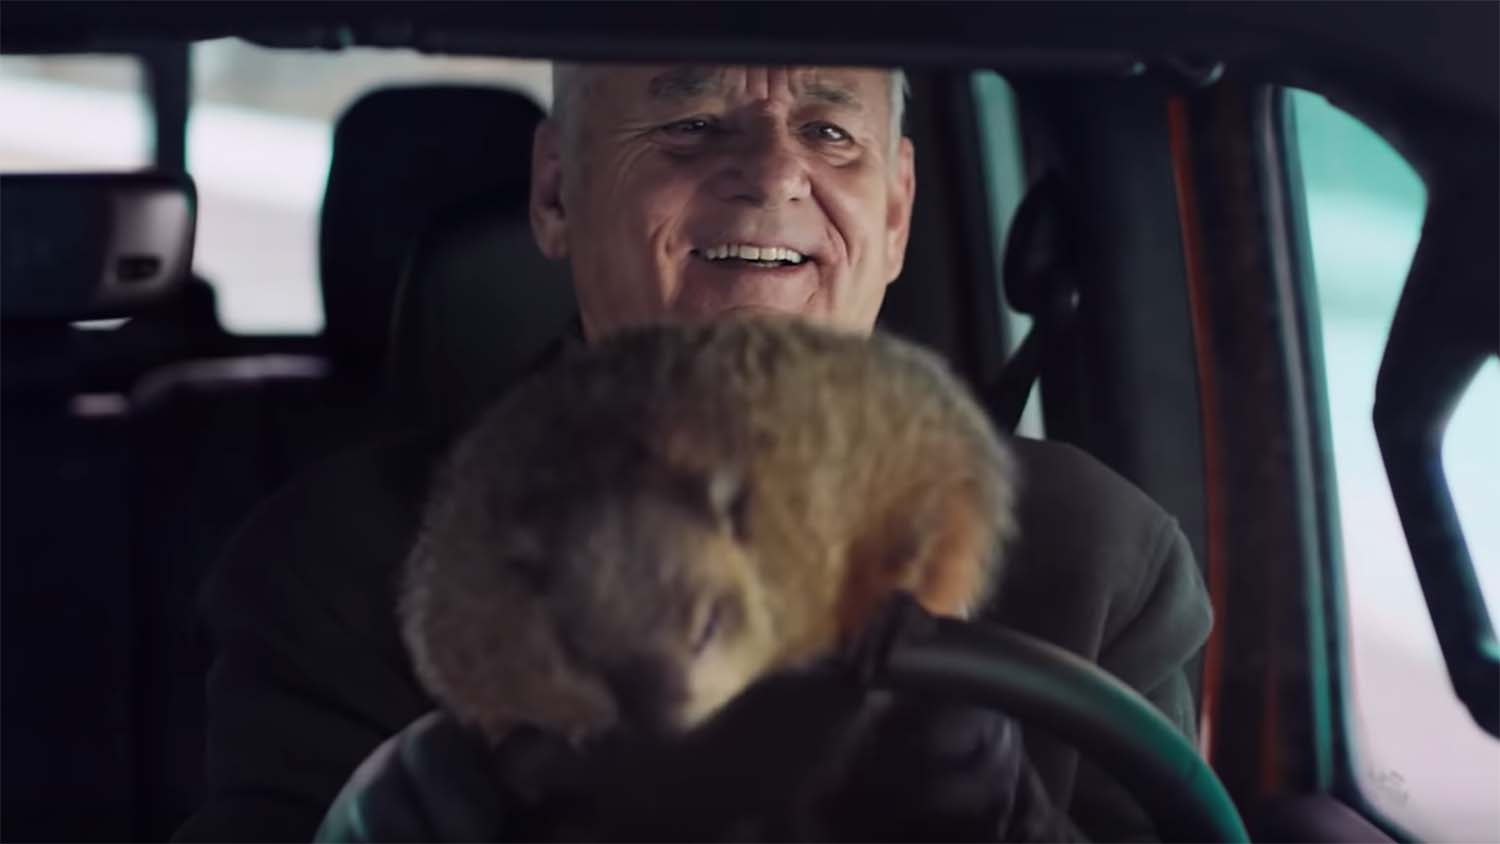 Bill Murray and the Groundhog in Jeep Super Bowl commercial